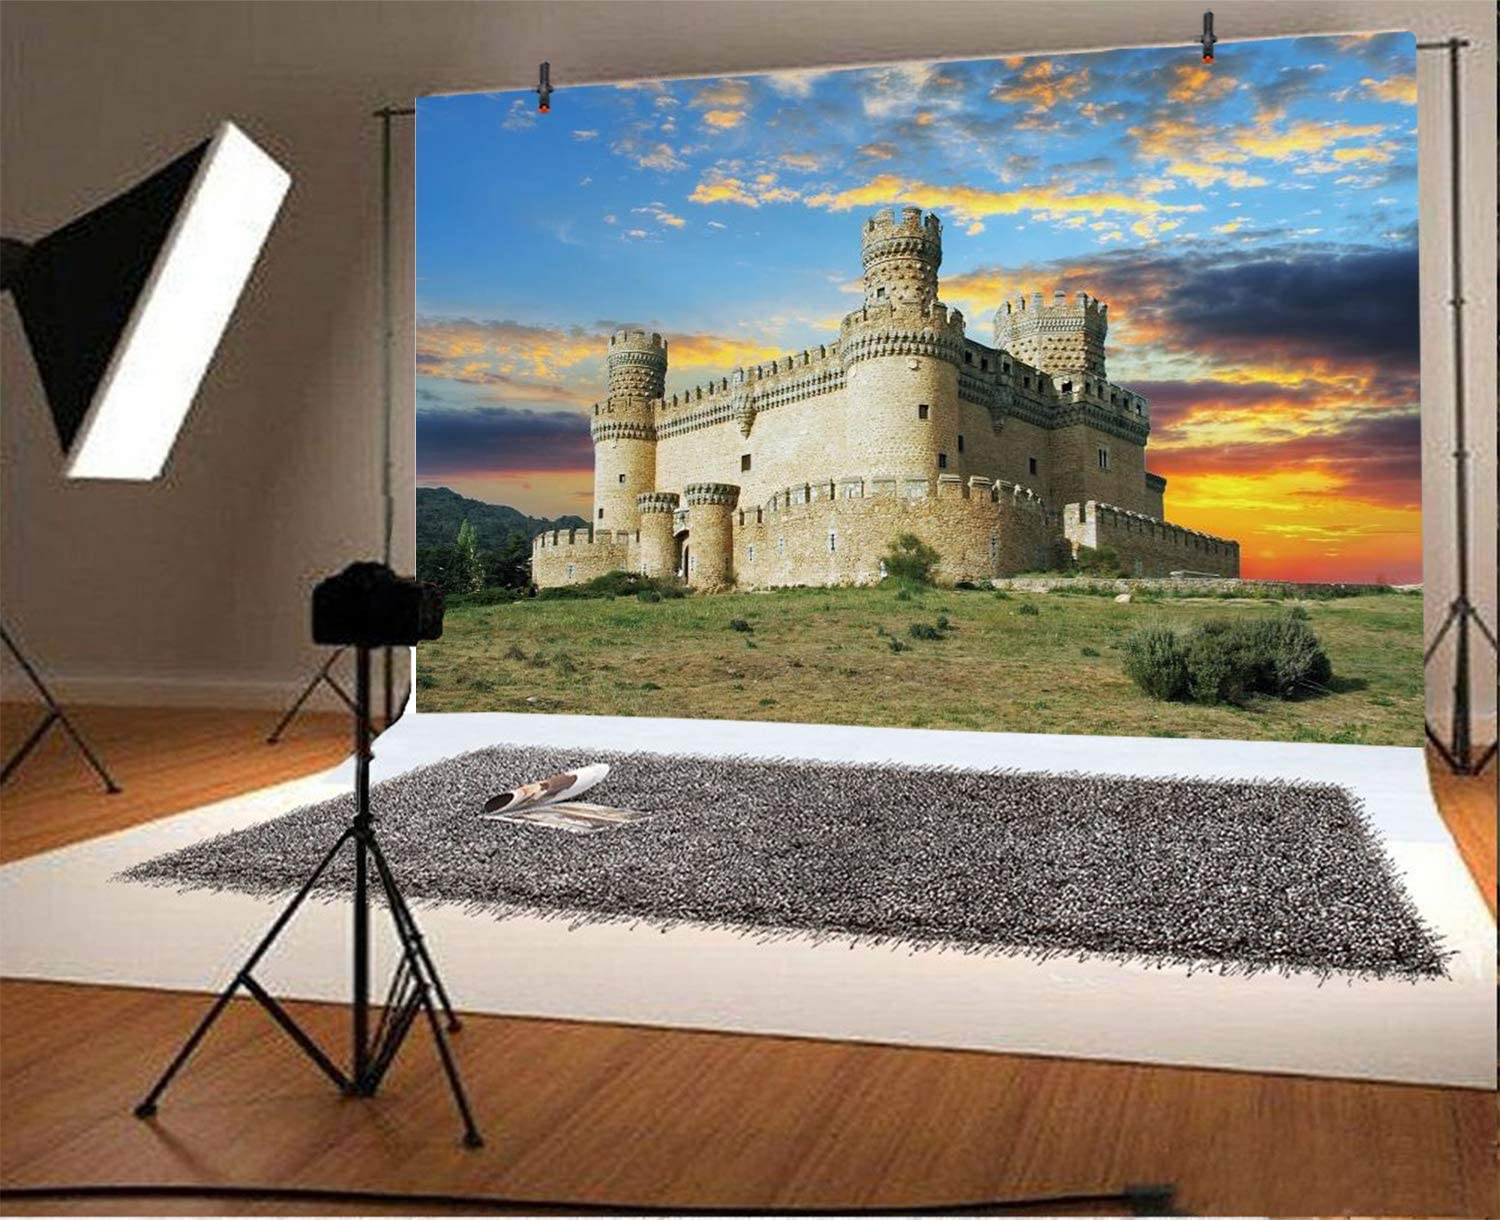 AOFOTO 6x4ft Polyester Sunset Old Castle Backdrop Spain Madrid Mediaeval Stone Fort Building Architecture Background Ancient Europa Historic Defense Wall Fortress Travel Photo Booth Props Washable